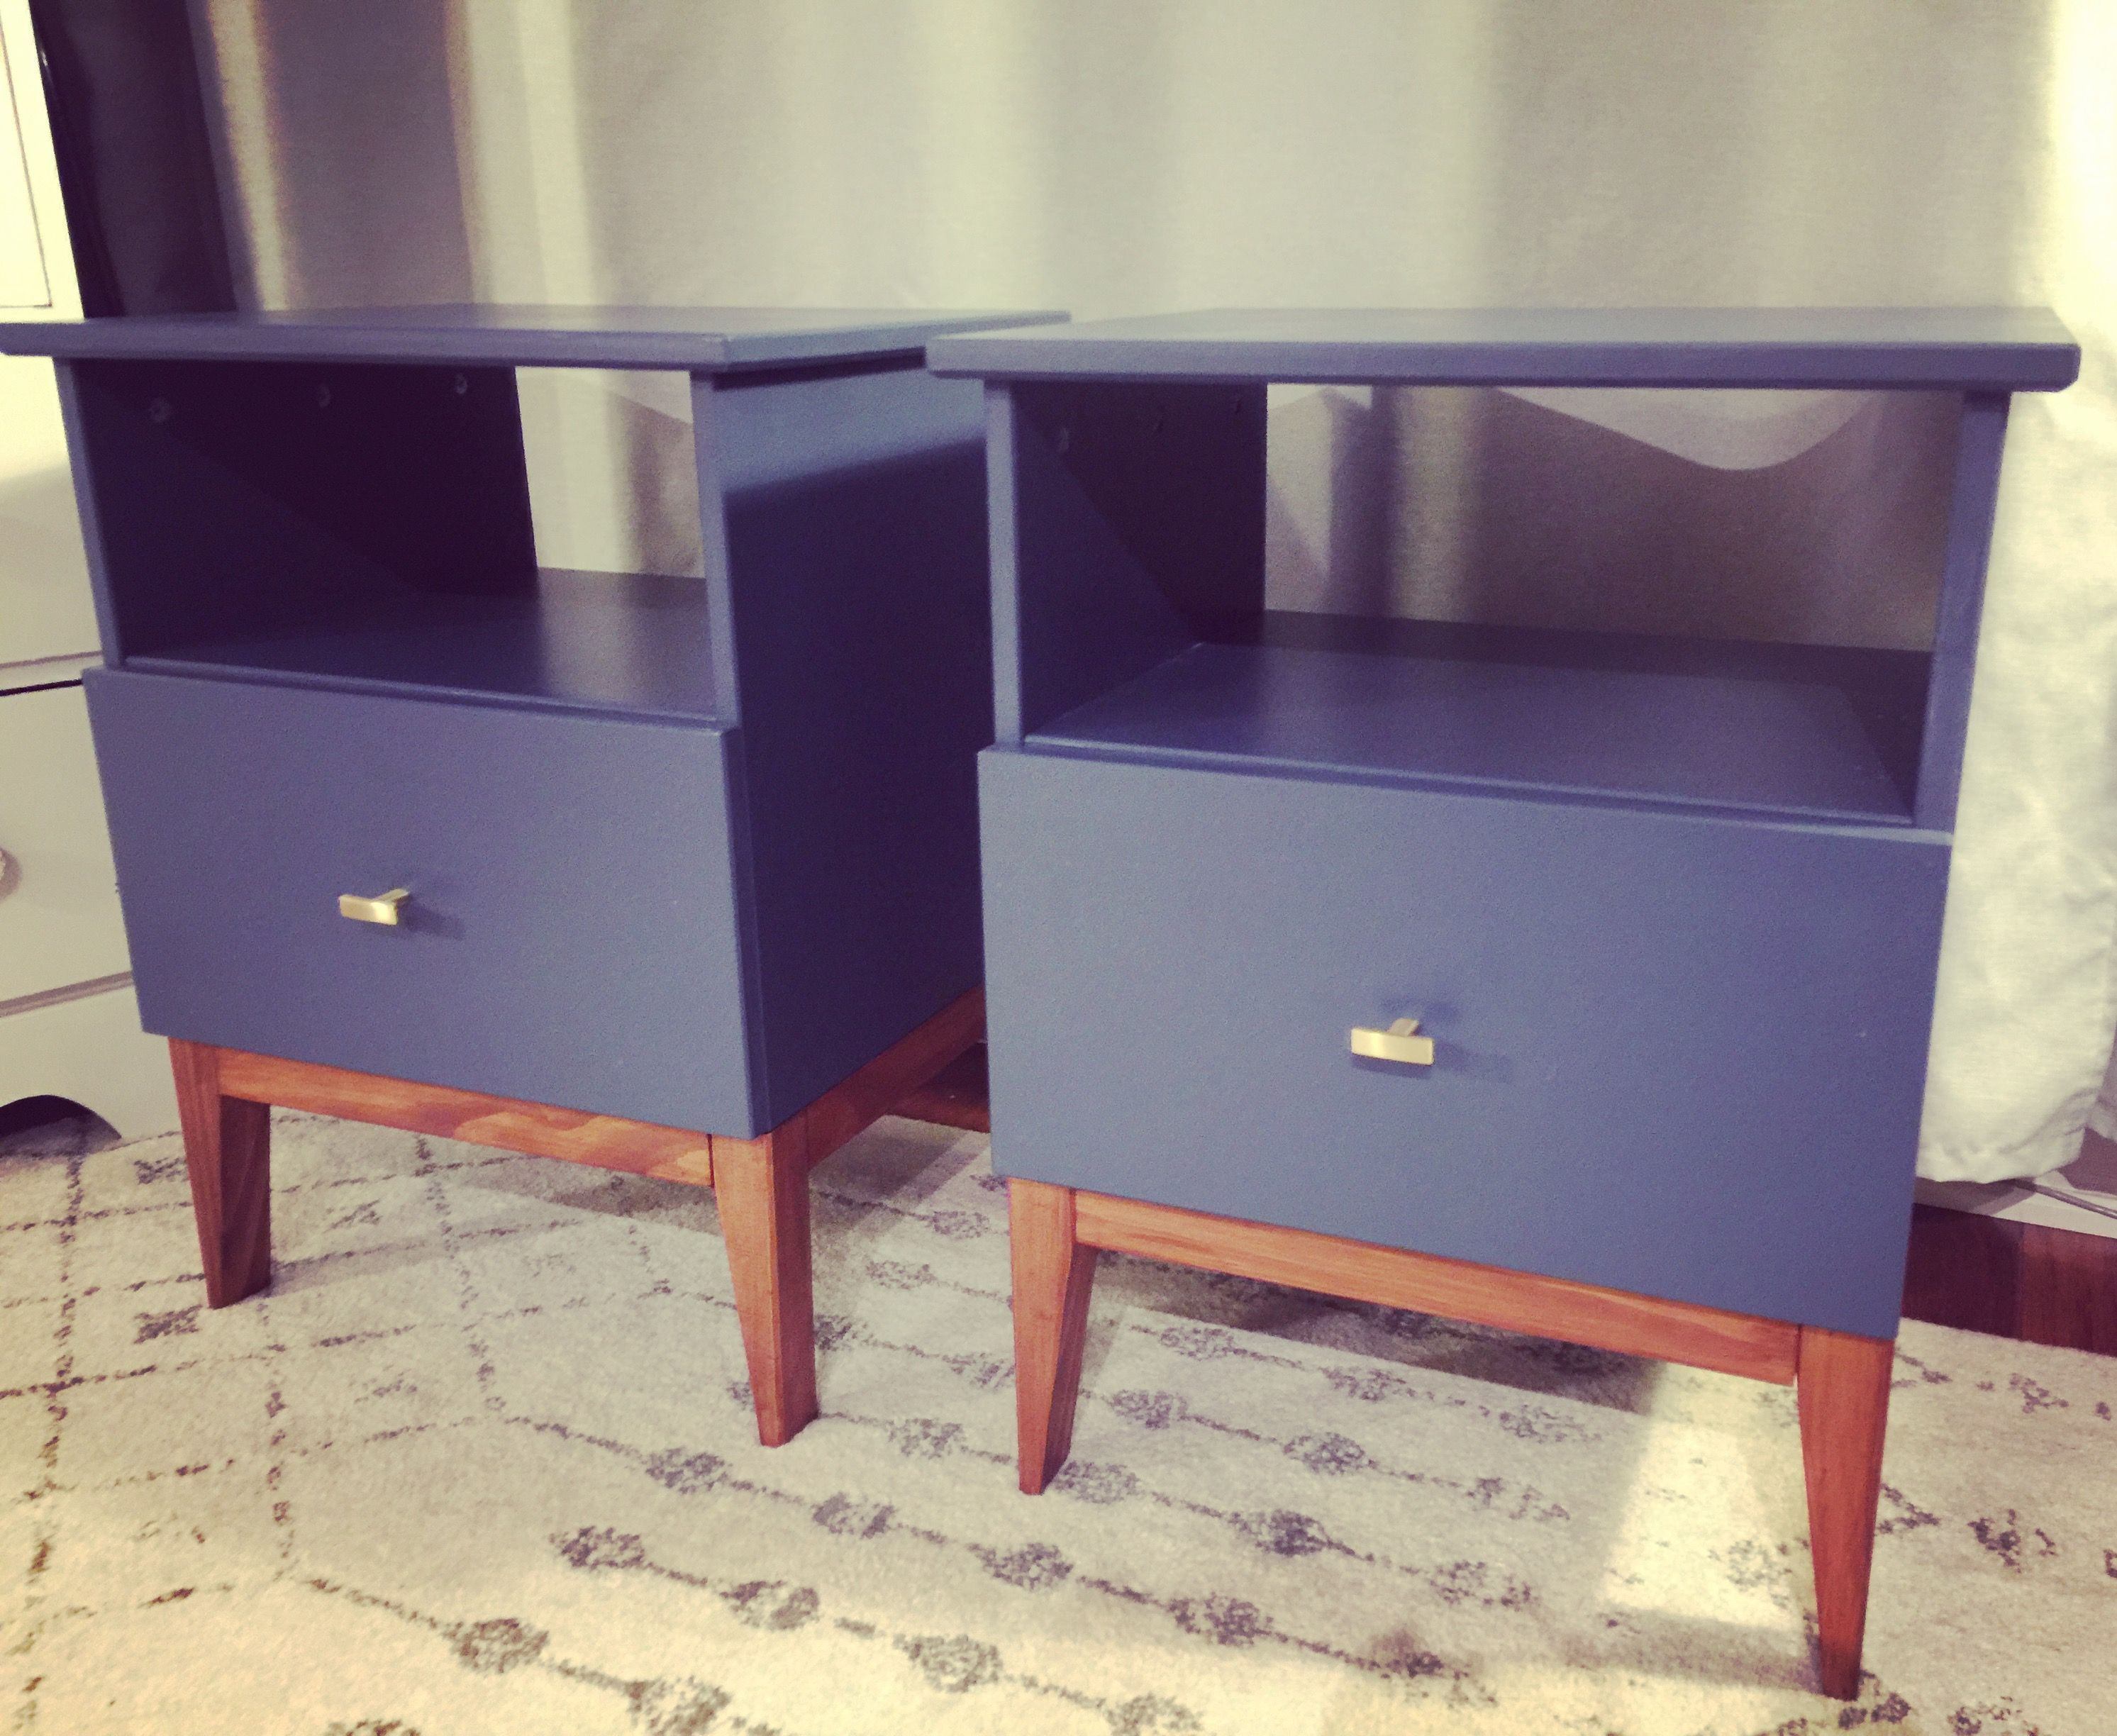 Mid Century Credenza Ikea Hack : Modern dresser set with mirror and chair ikea mid century dressers